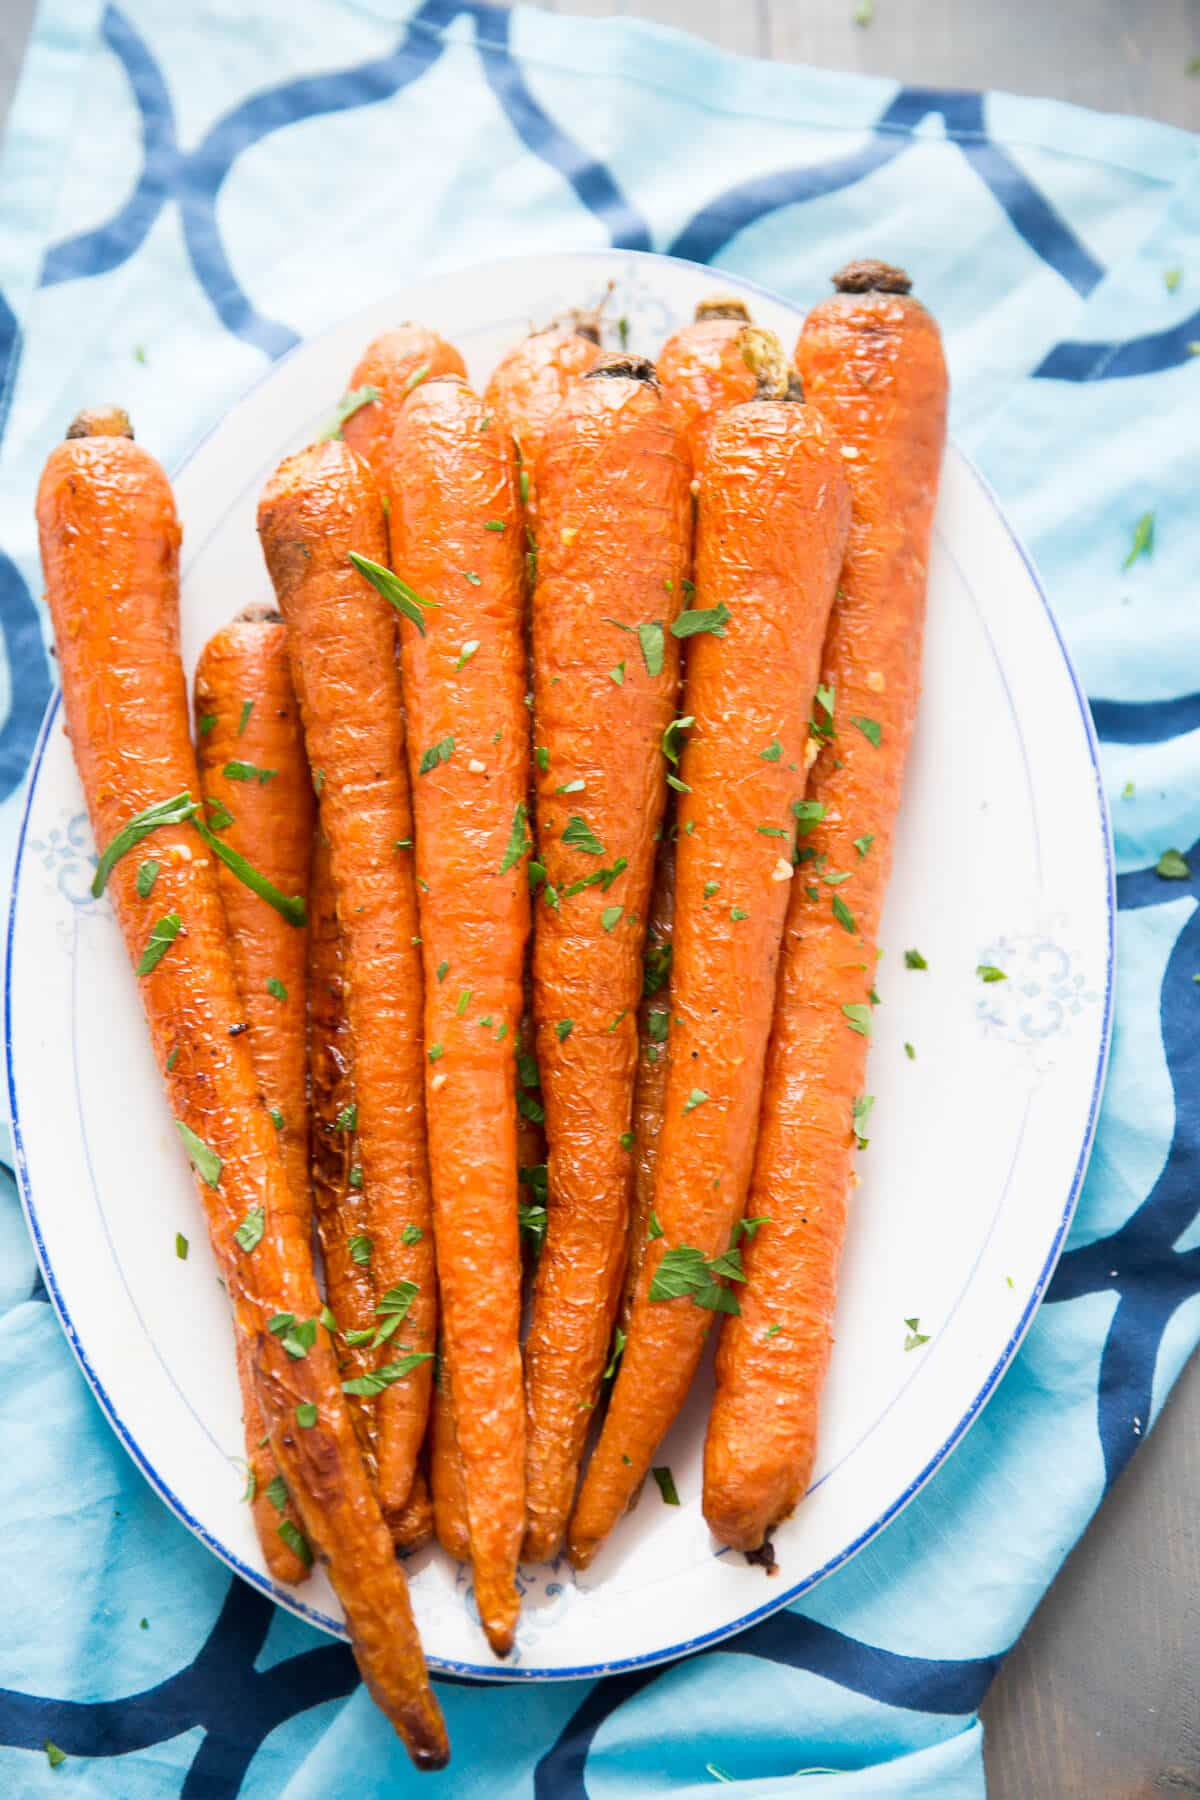 Oven roasted carrots are such a simple side dish! The bake up soft, tender and so delicious!